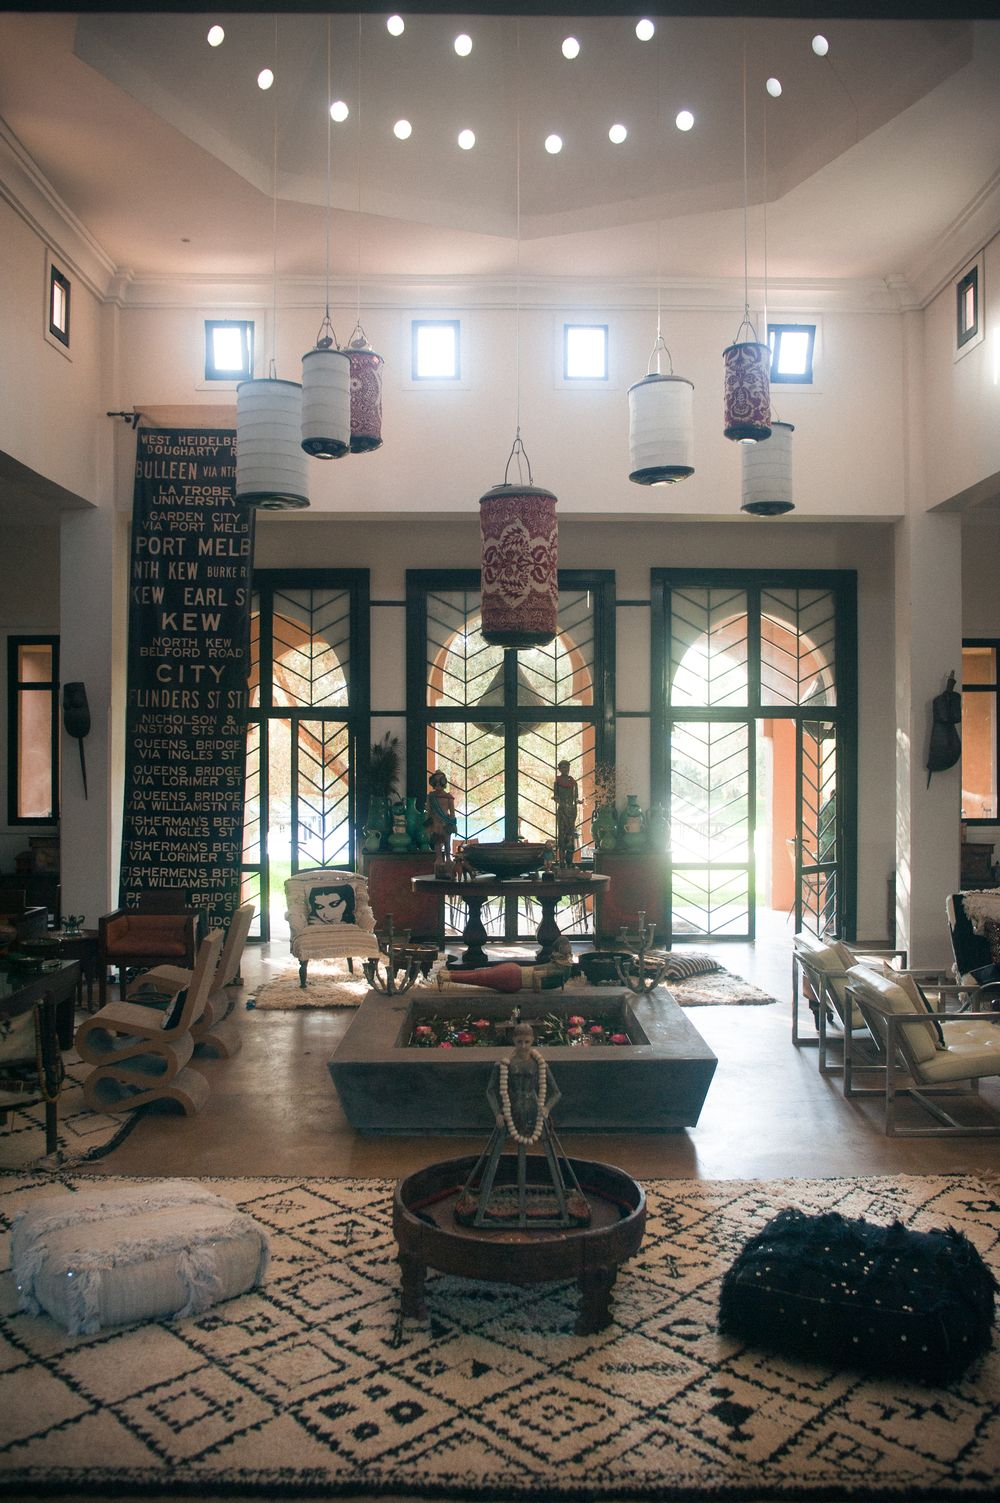 Salon Marrakech M Montague Tribal Chic For The Modern Nomad Grand Salon At